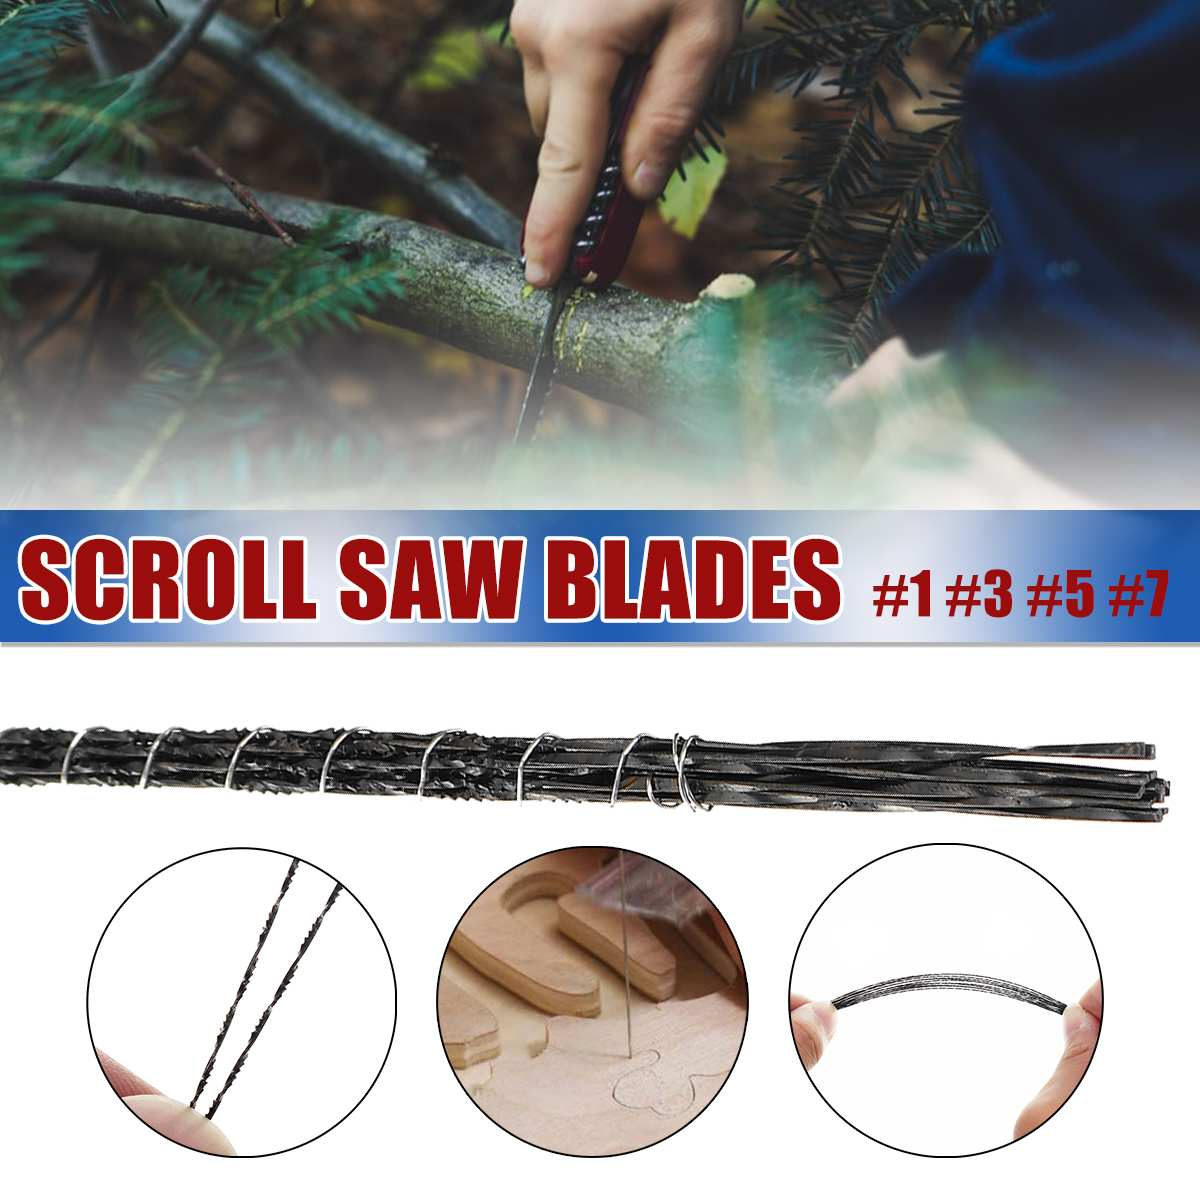 12Pcs 130mm Scroll Saw Blades 1/3/5/7# Jig Saw Blades Spiral Teeth 5 Kinds Wood Saw Blades For Carving  With Chuck